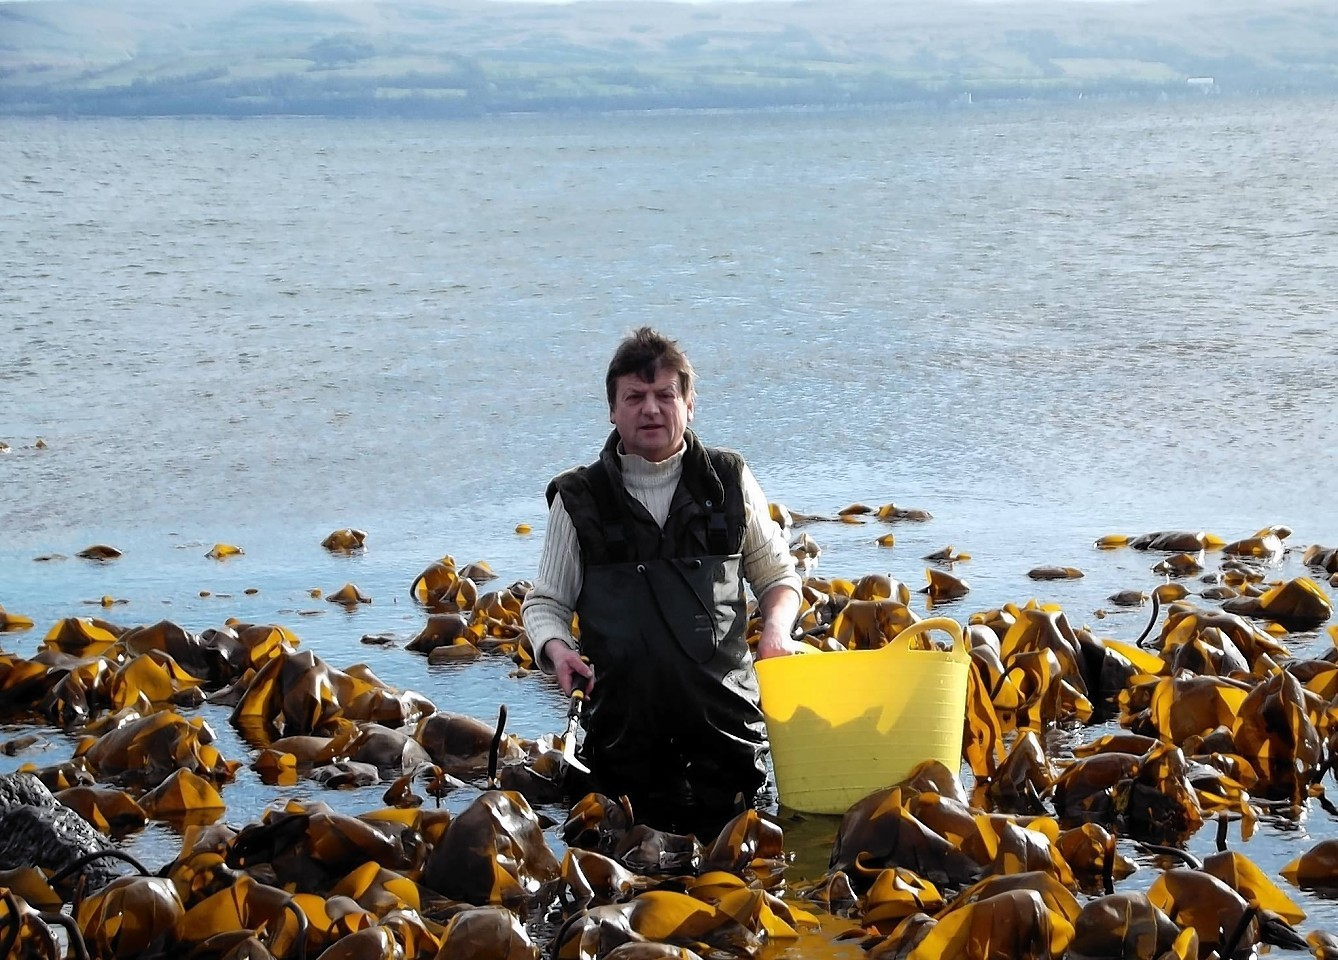 Iain McKellar collecting seaweed for his shop.